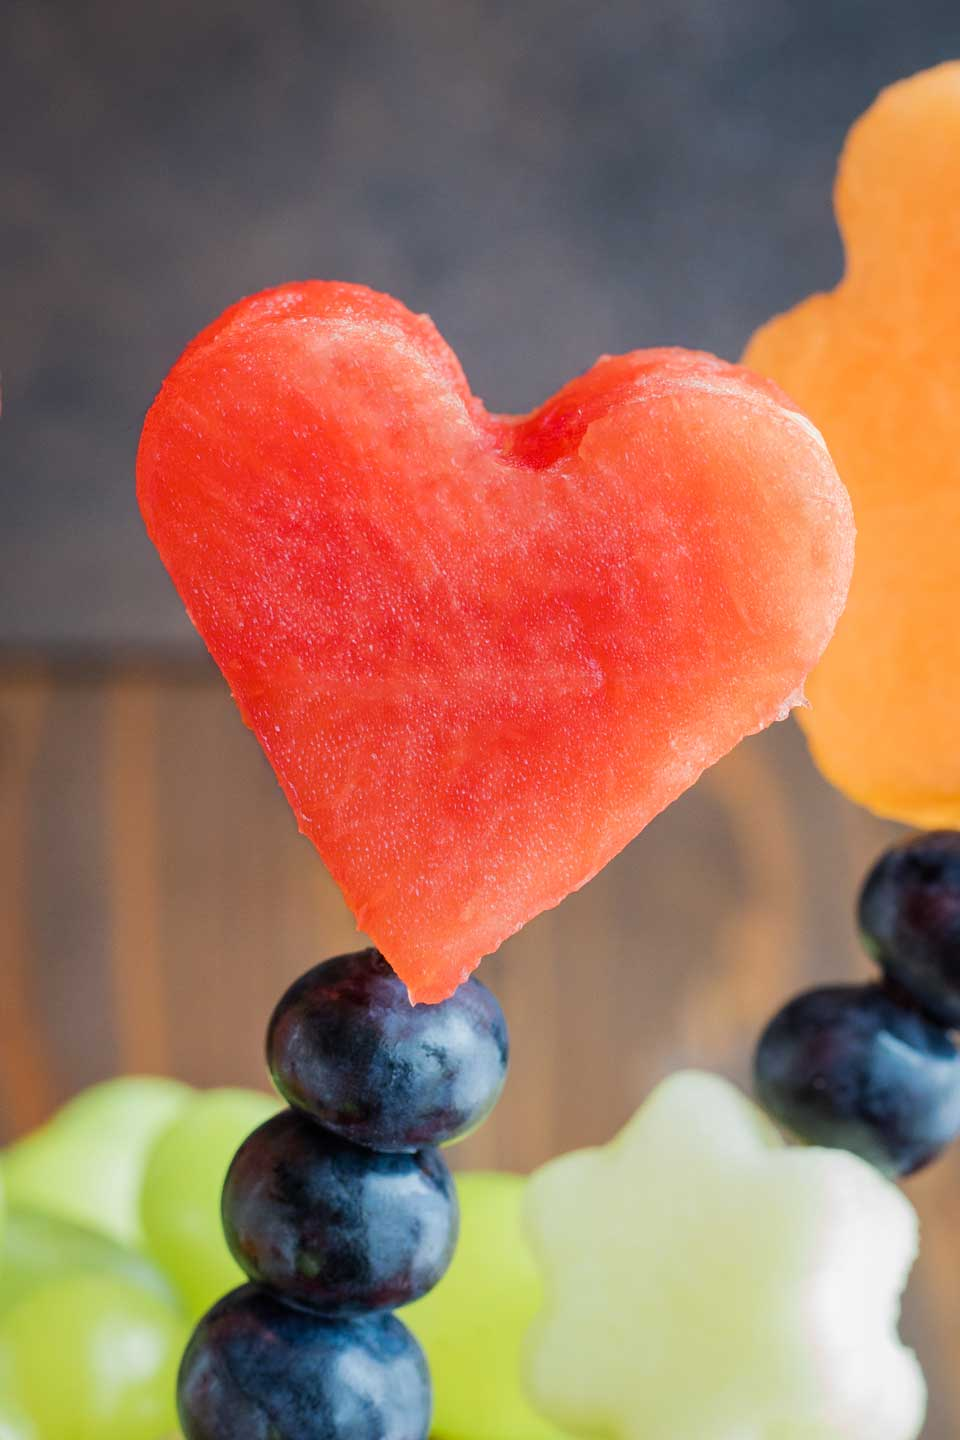 closeup of a heart cut out of watermelon, skewered on a kabob with blueberries and other fruit